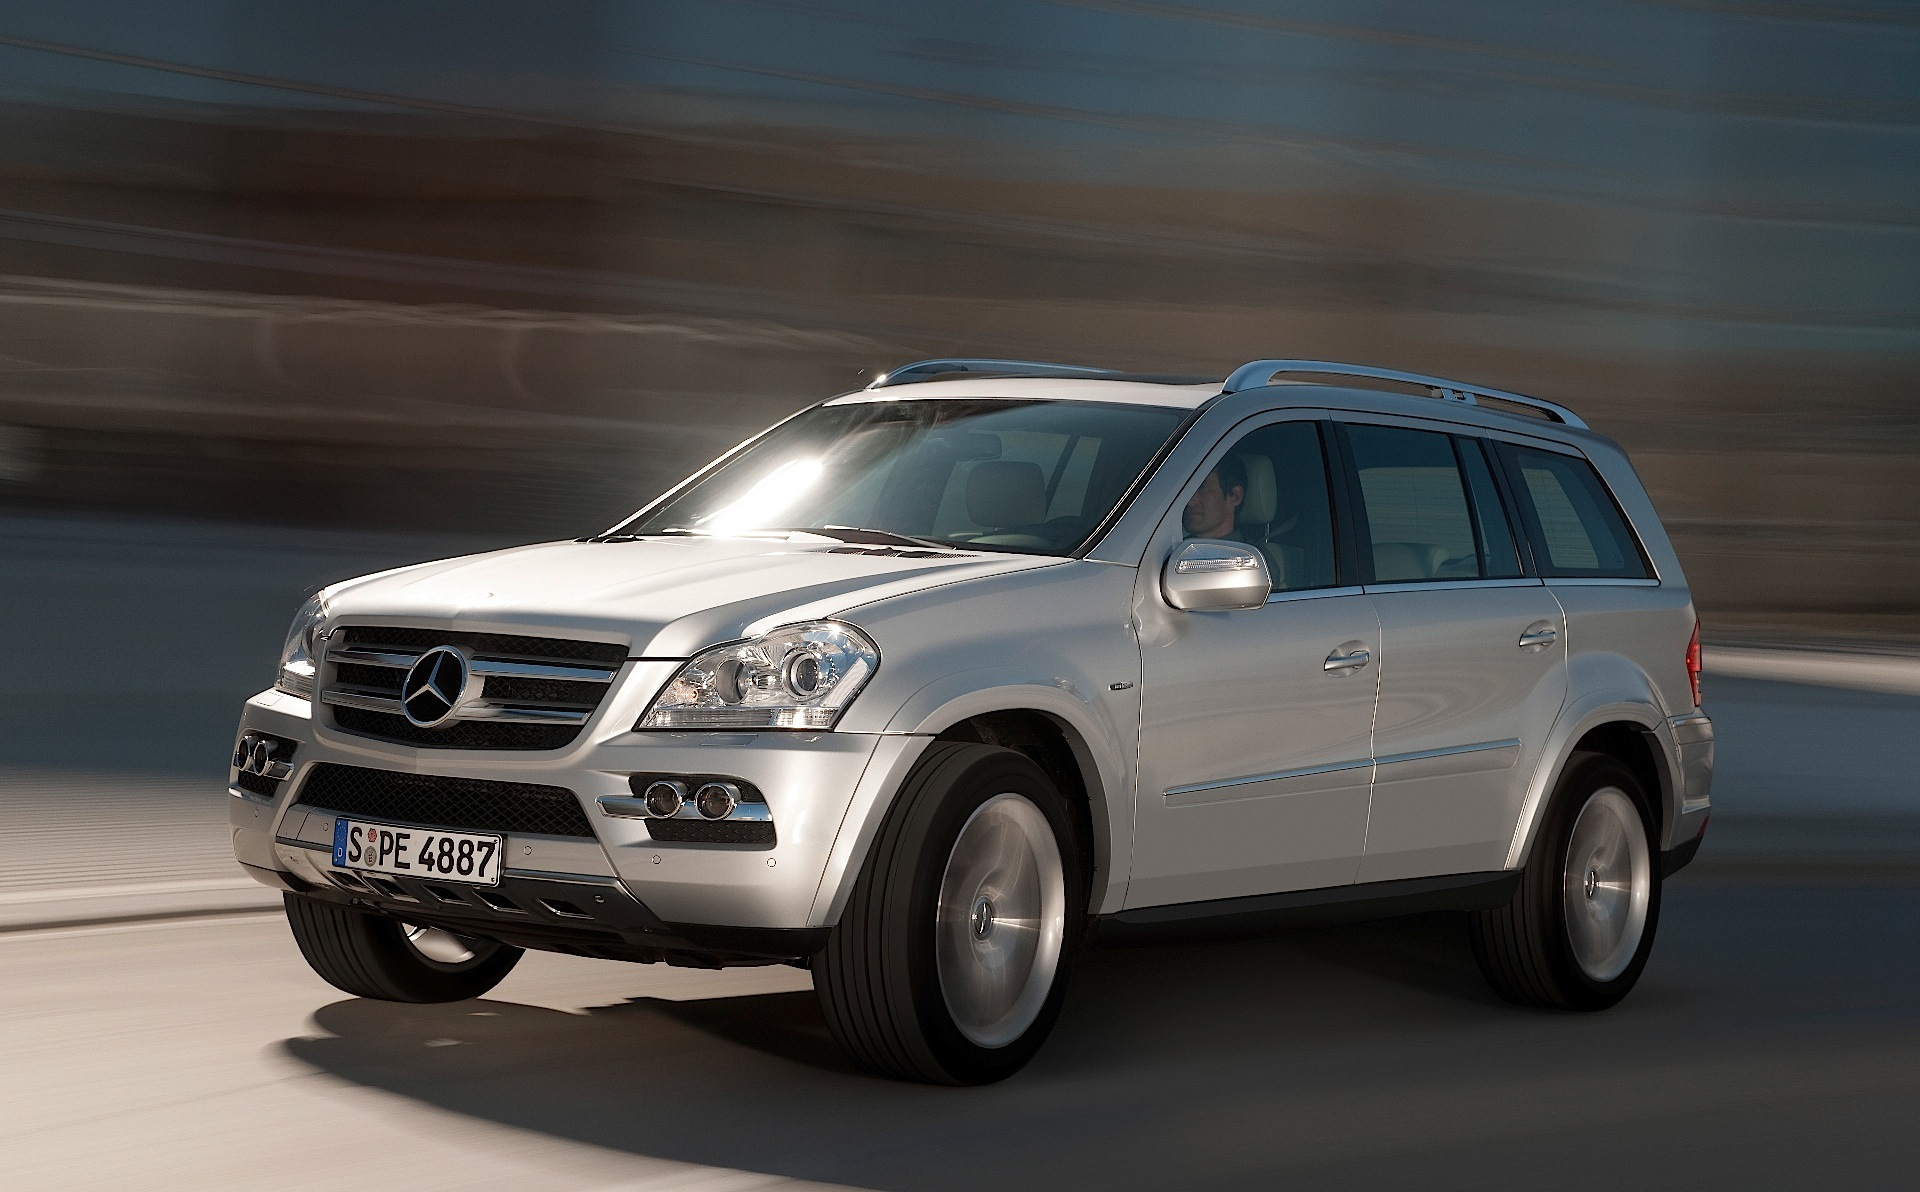 Mercedes benz gl klasse x164 2009 2010 2011 2012 for Gl mercedes benz